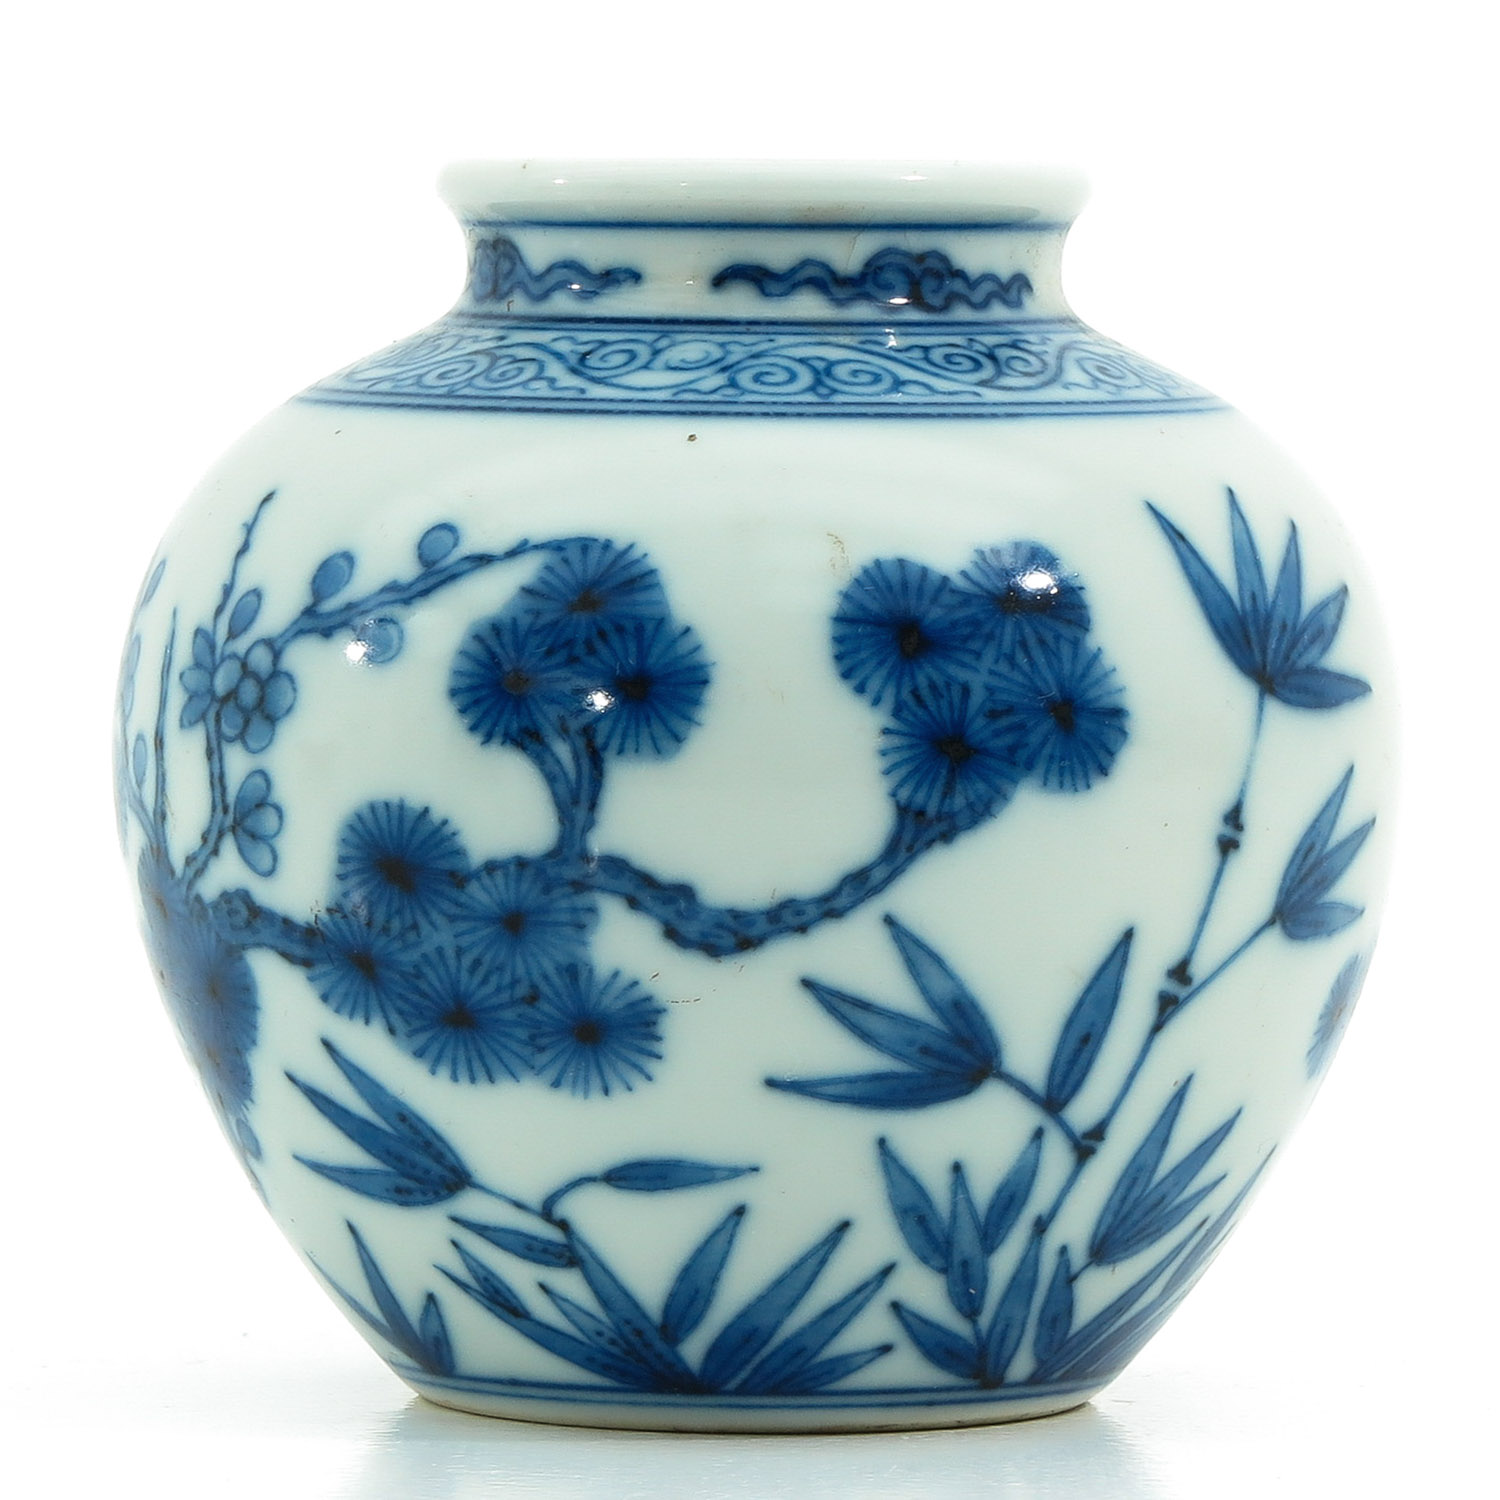 A Small Blue and White Vase - Image 3 of 9